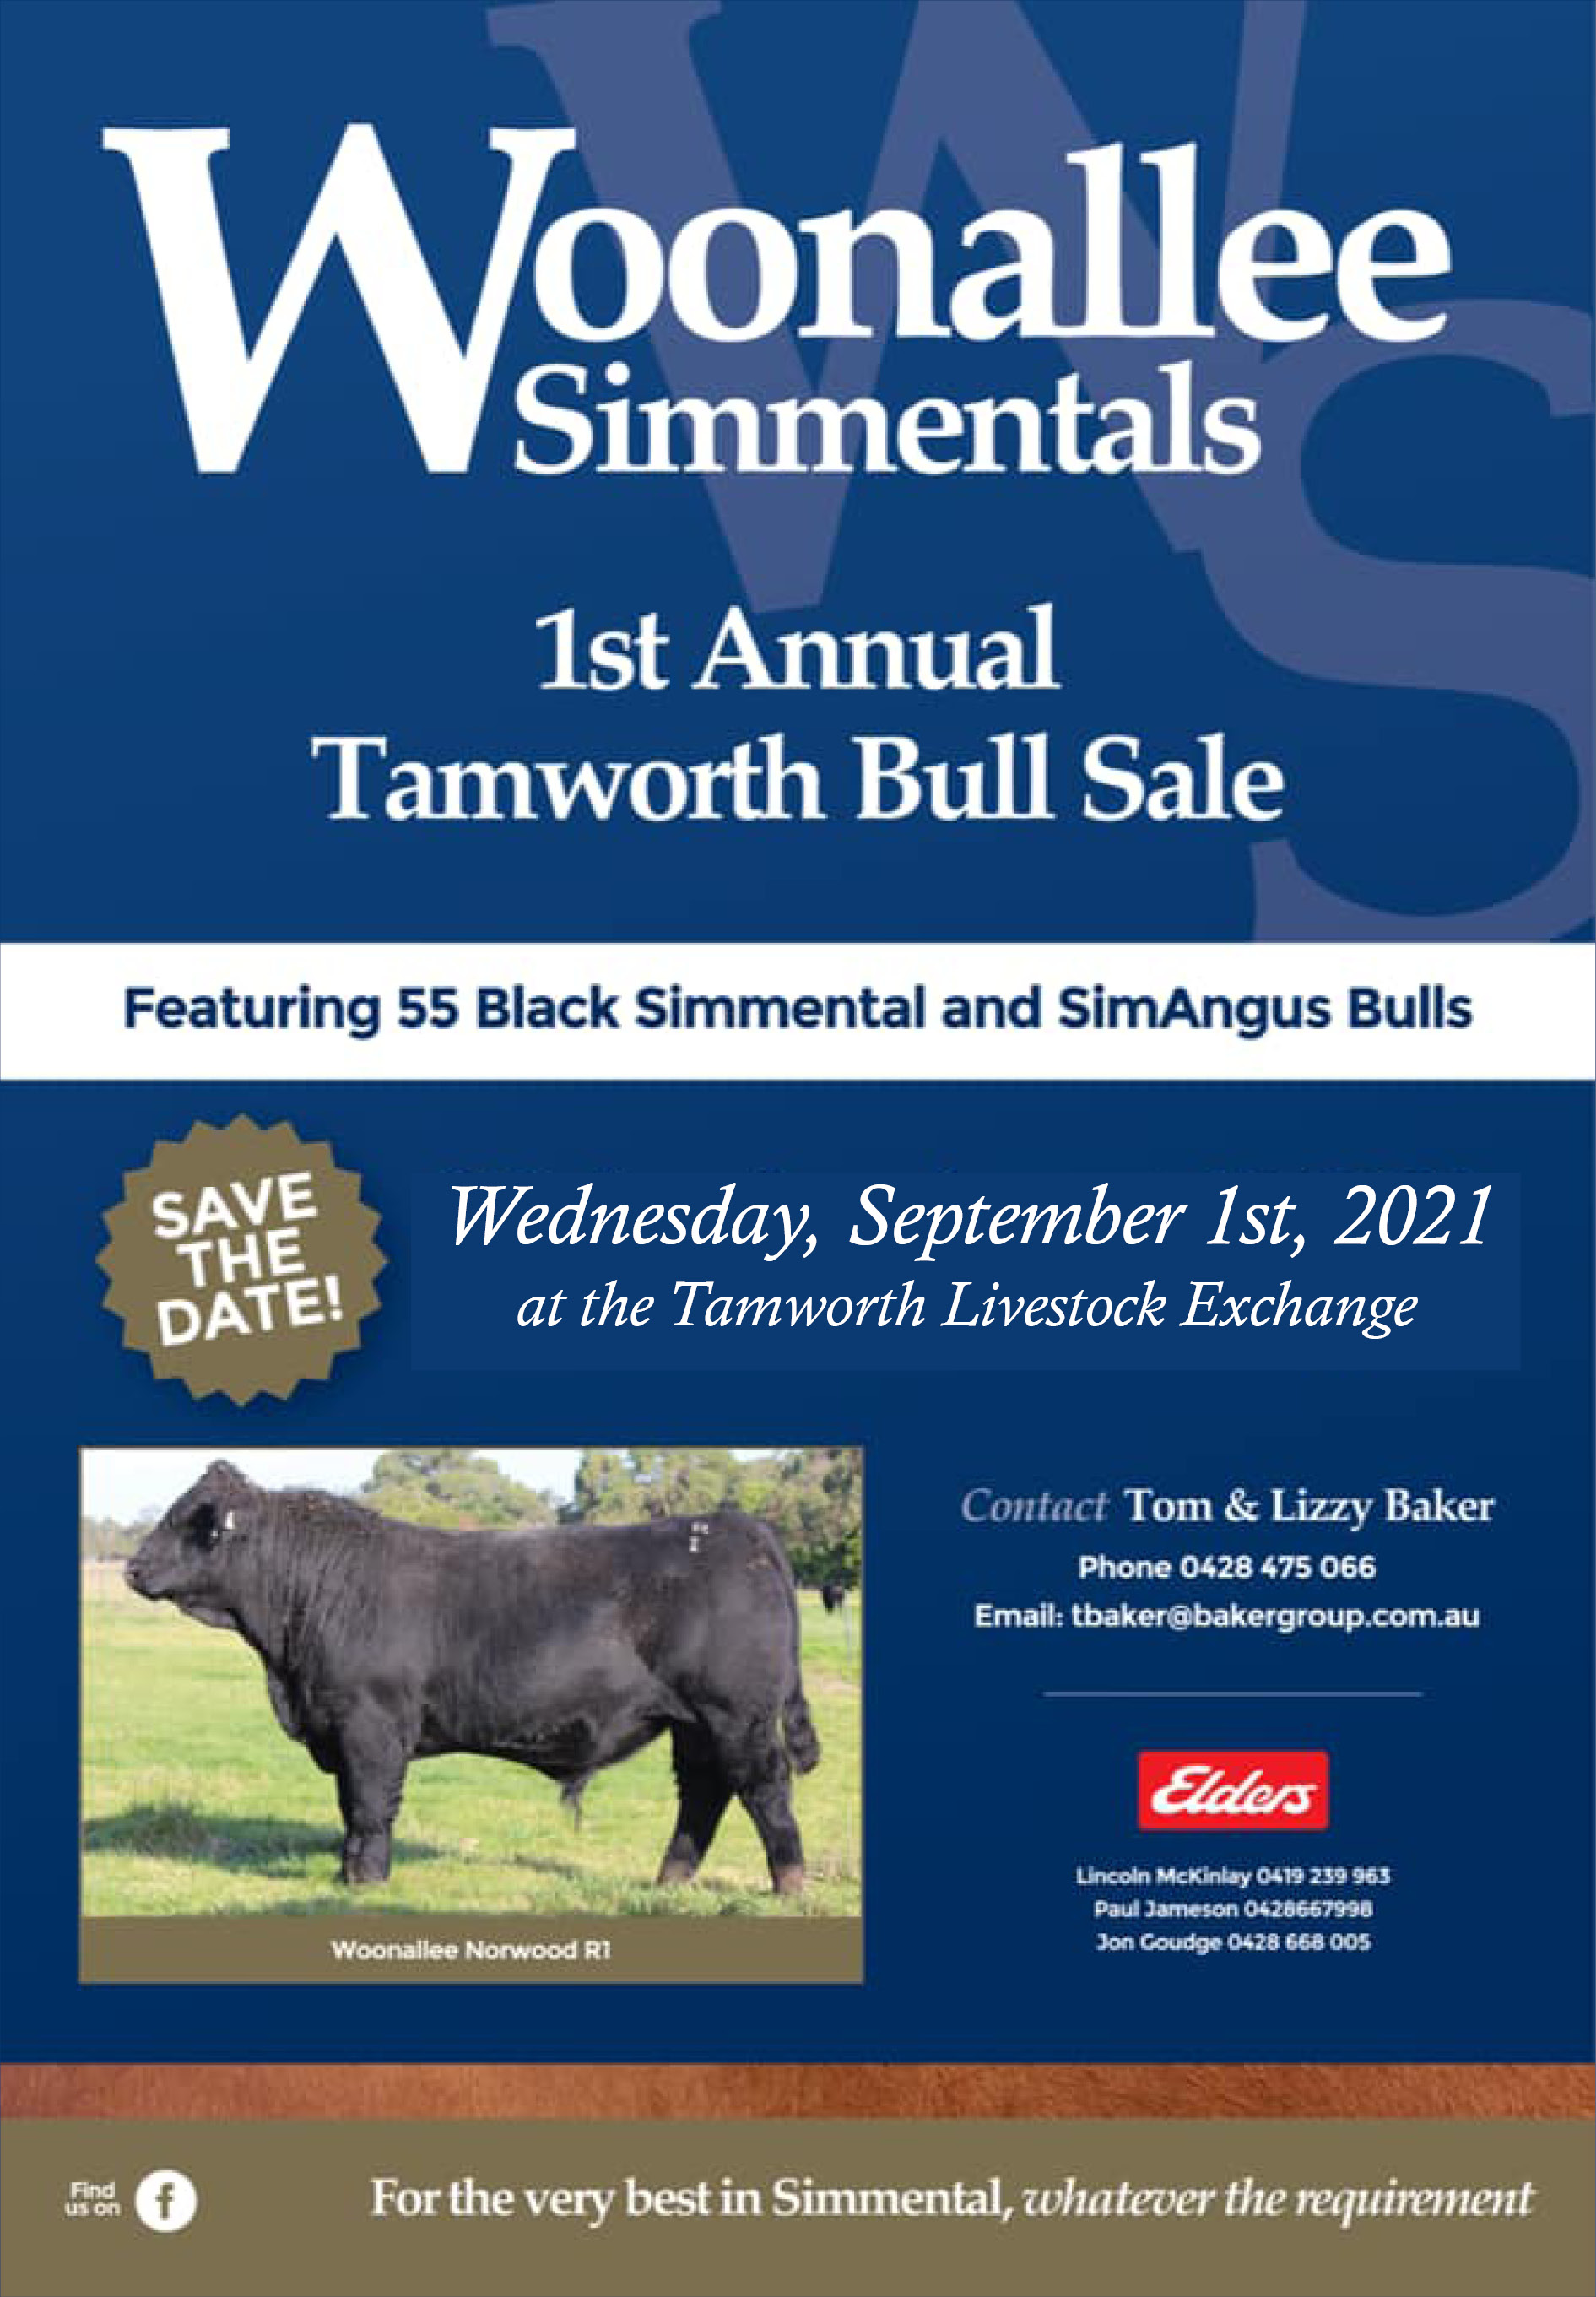 Woonallee Simmentals 1st Annual Tamworth Bull Sale